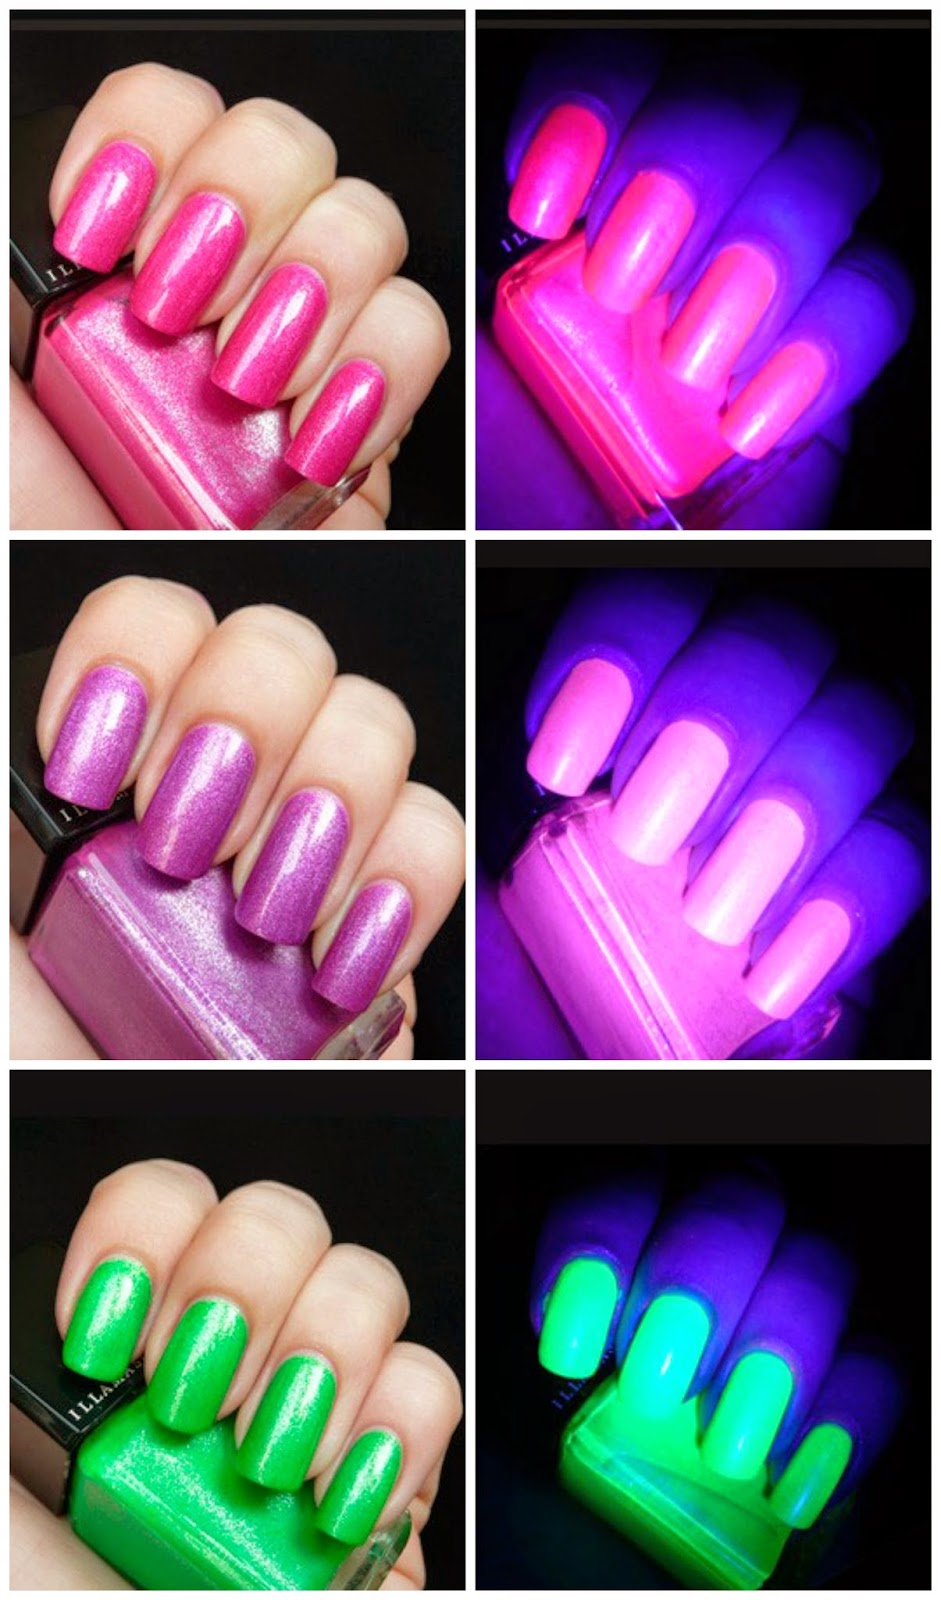 Fashion Friday: Glow-in-the-dark nails - So About What I Said